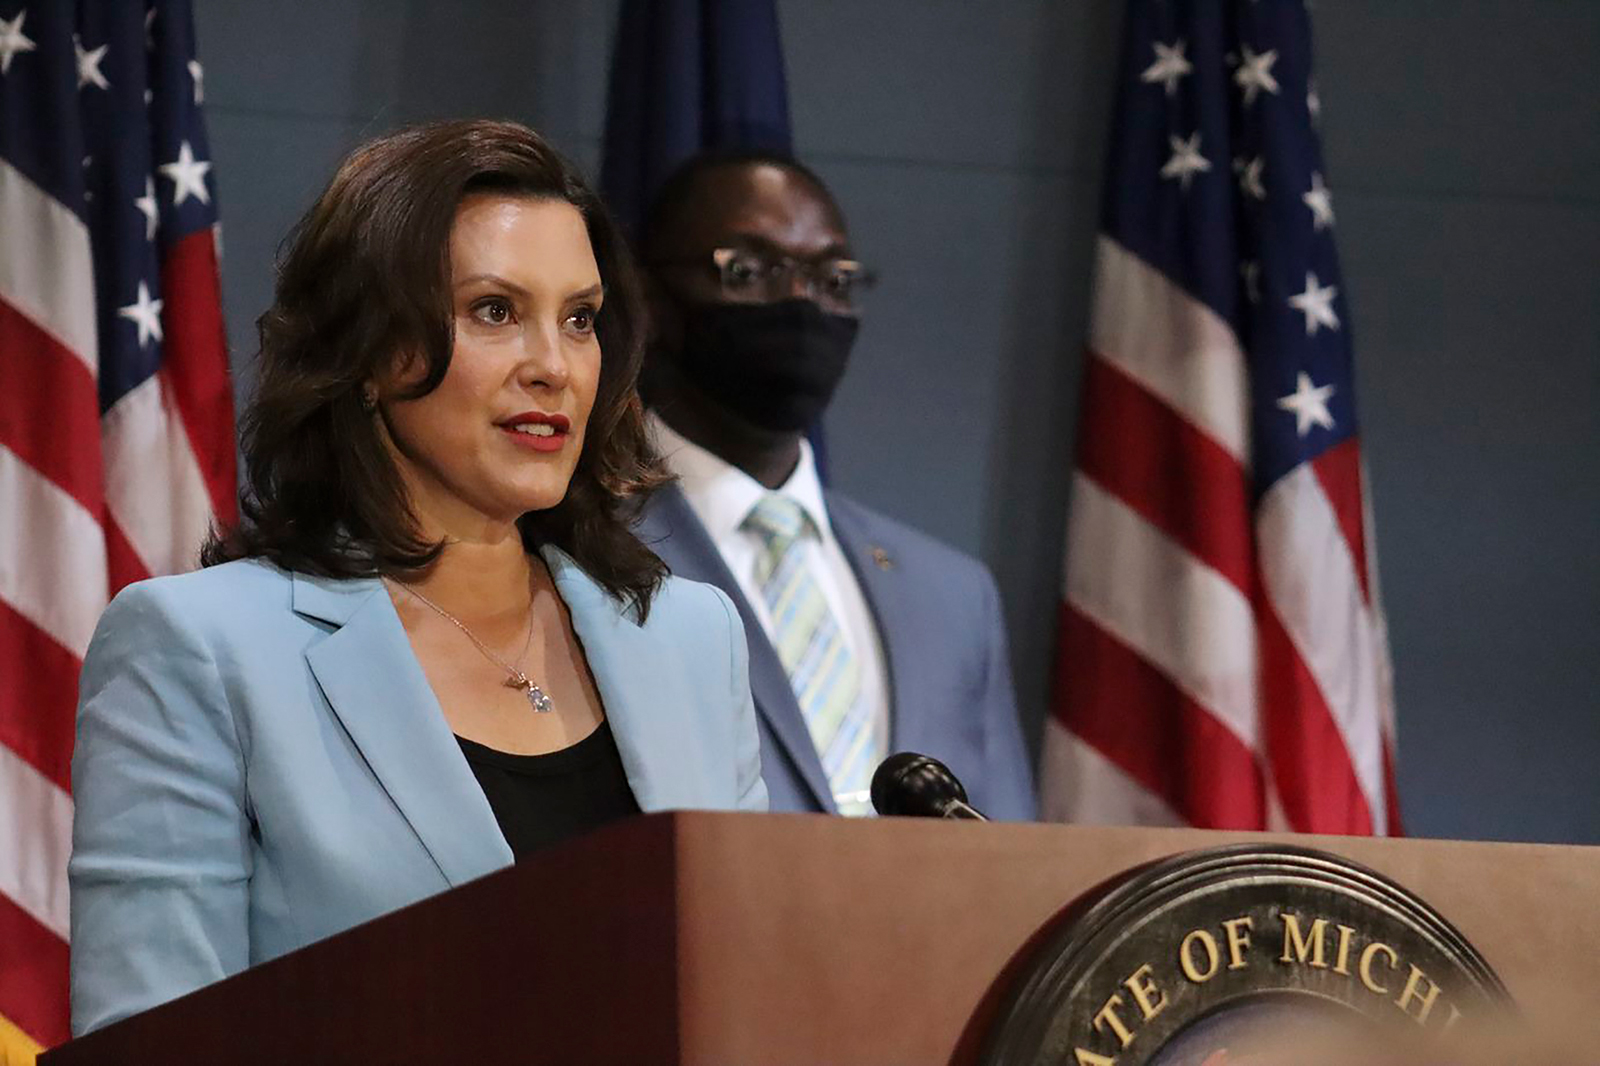 In this file photo, Michigan Gov. Gretchen Whitmer addresses the state during a speech in Lansing, Michigan on July 9.